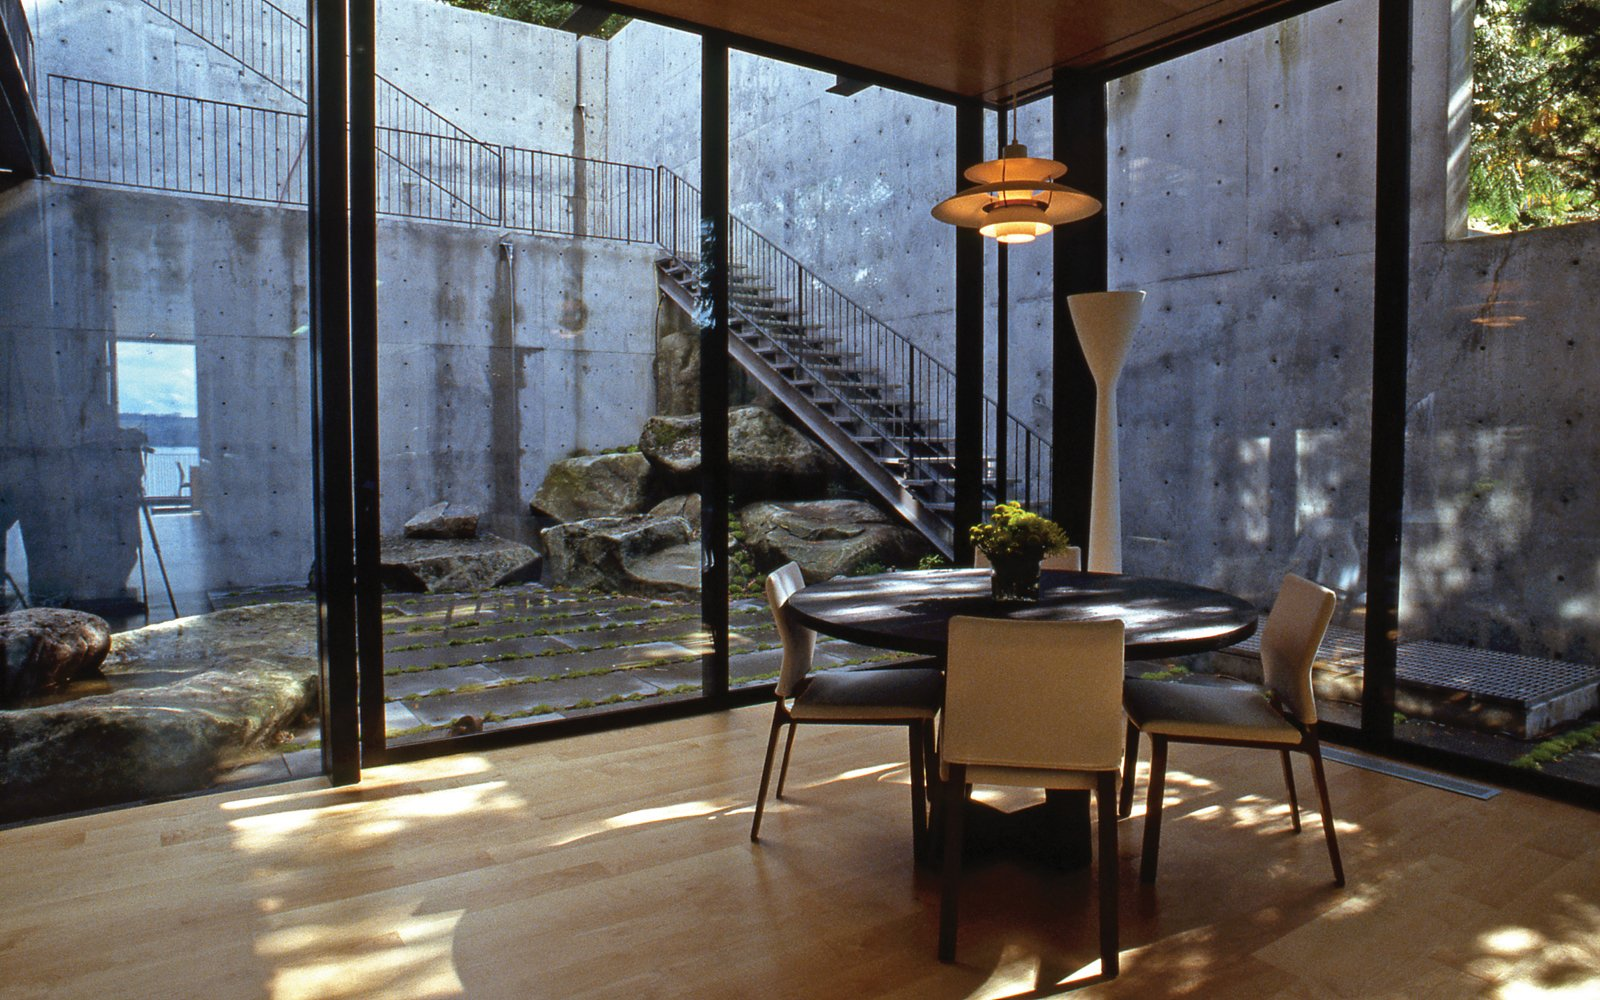 Tagged: Outdoor and Boulders.  Courtyard House on a Steep Site by Robert Hutchison Architecture